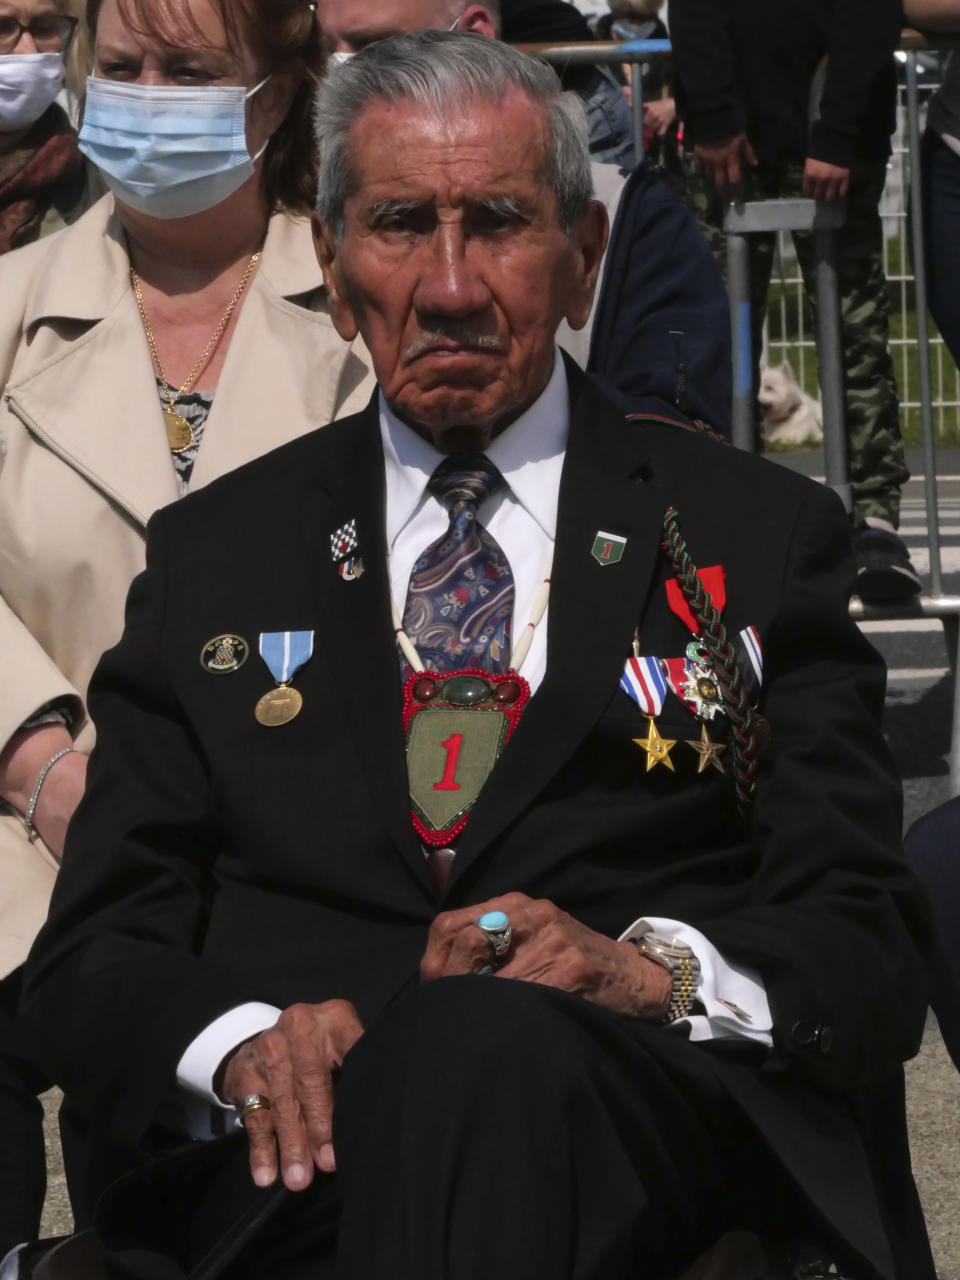 Charles Shay, right, the 96-year-old native American from Indian Island, Maine, attends a D-Day ceremony in Carentan, Normandy, Friday, June 4, 2021. In a small Normandy town where paratroopers landed in the early hours of D-Day, applauds broke the silence to honor Charles Shay. He was the only veteran to attend the ceremony in Carentan commemorating the 77th anniversary of the assault that led to the end World War II. Shay was a 19-year-old U.S. Army medic when he landed on Omaha Beach. (AP Photo/Nicolas Garriga)